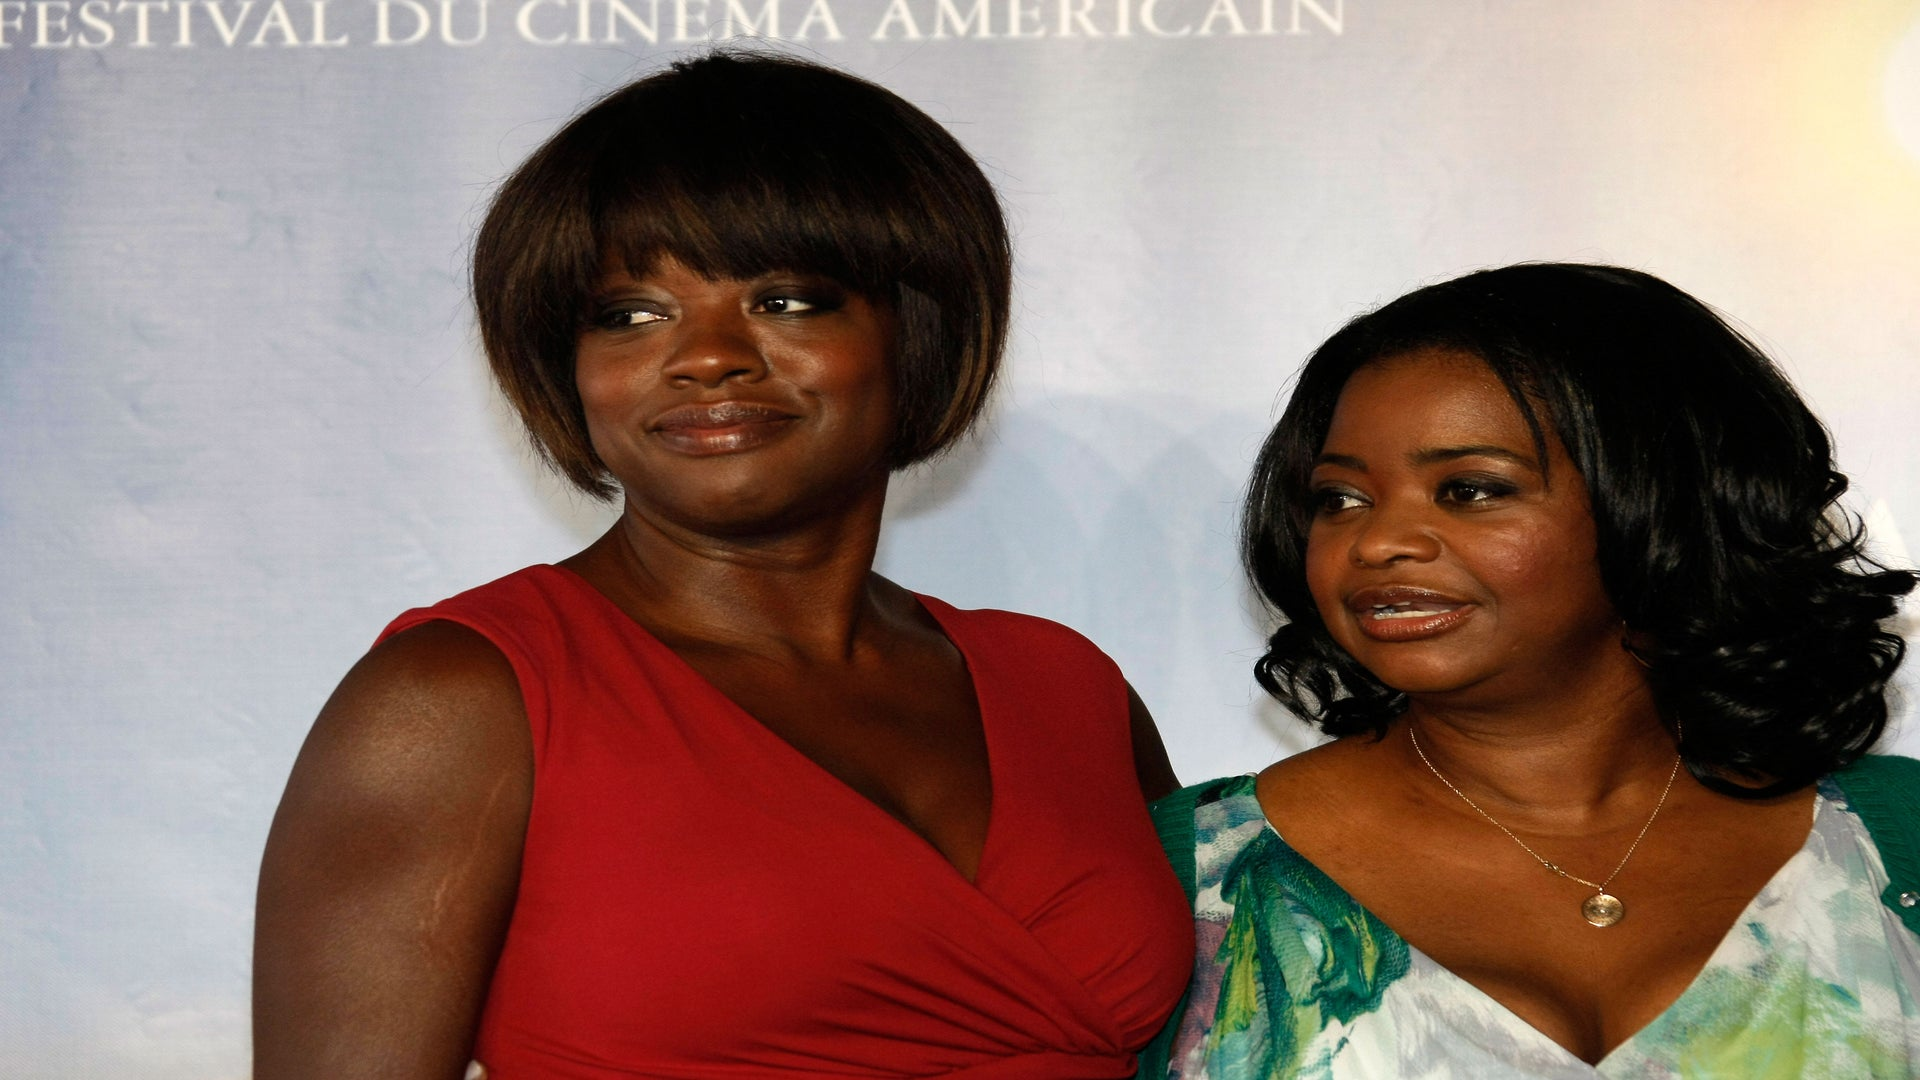 'The Help' Cast to Receive Ensemble Acting Award